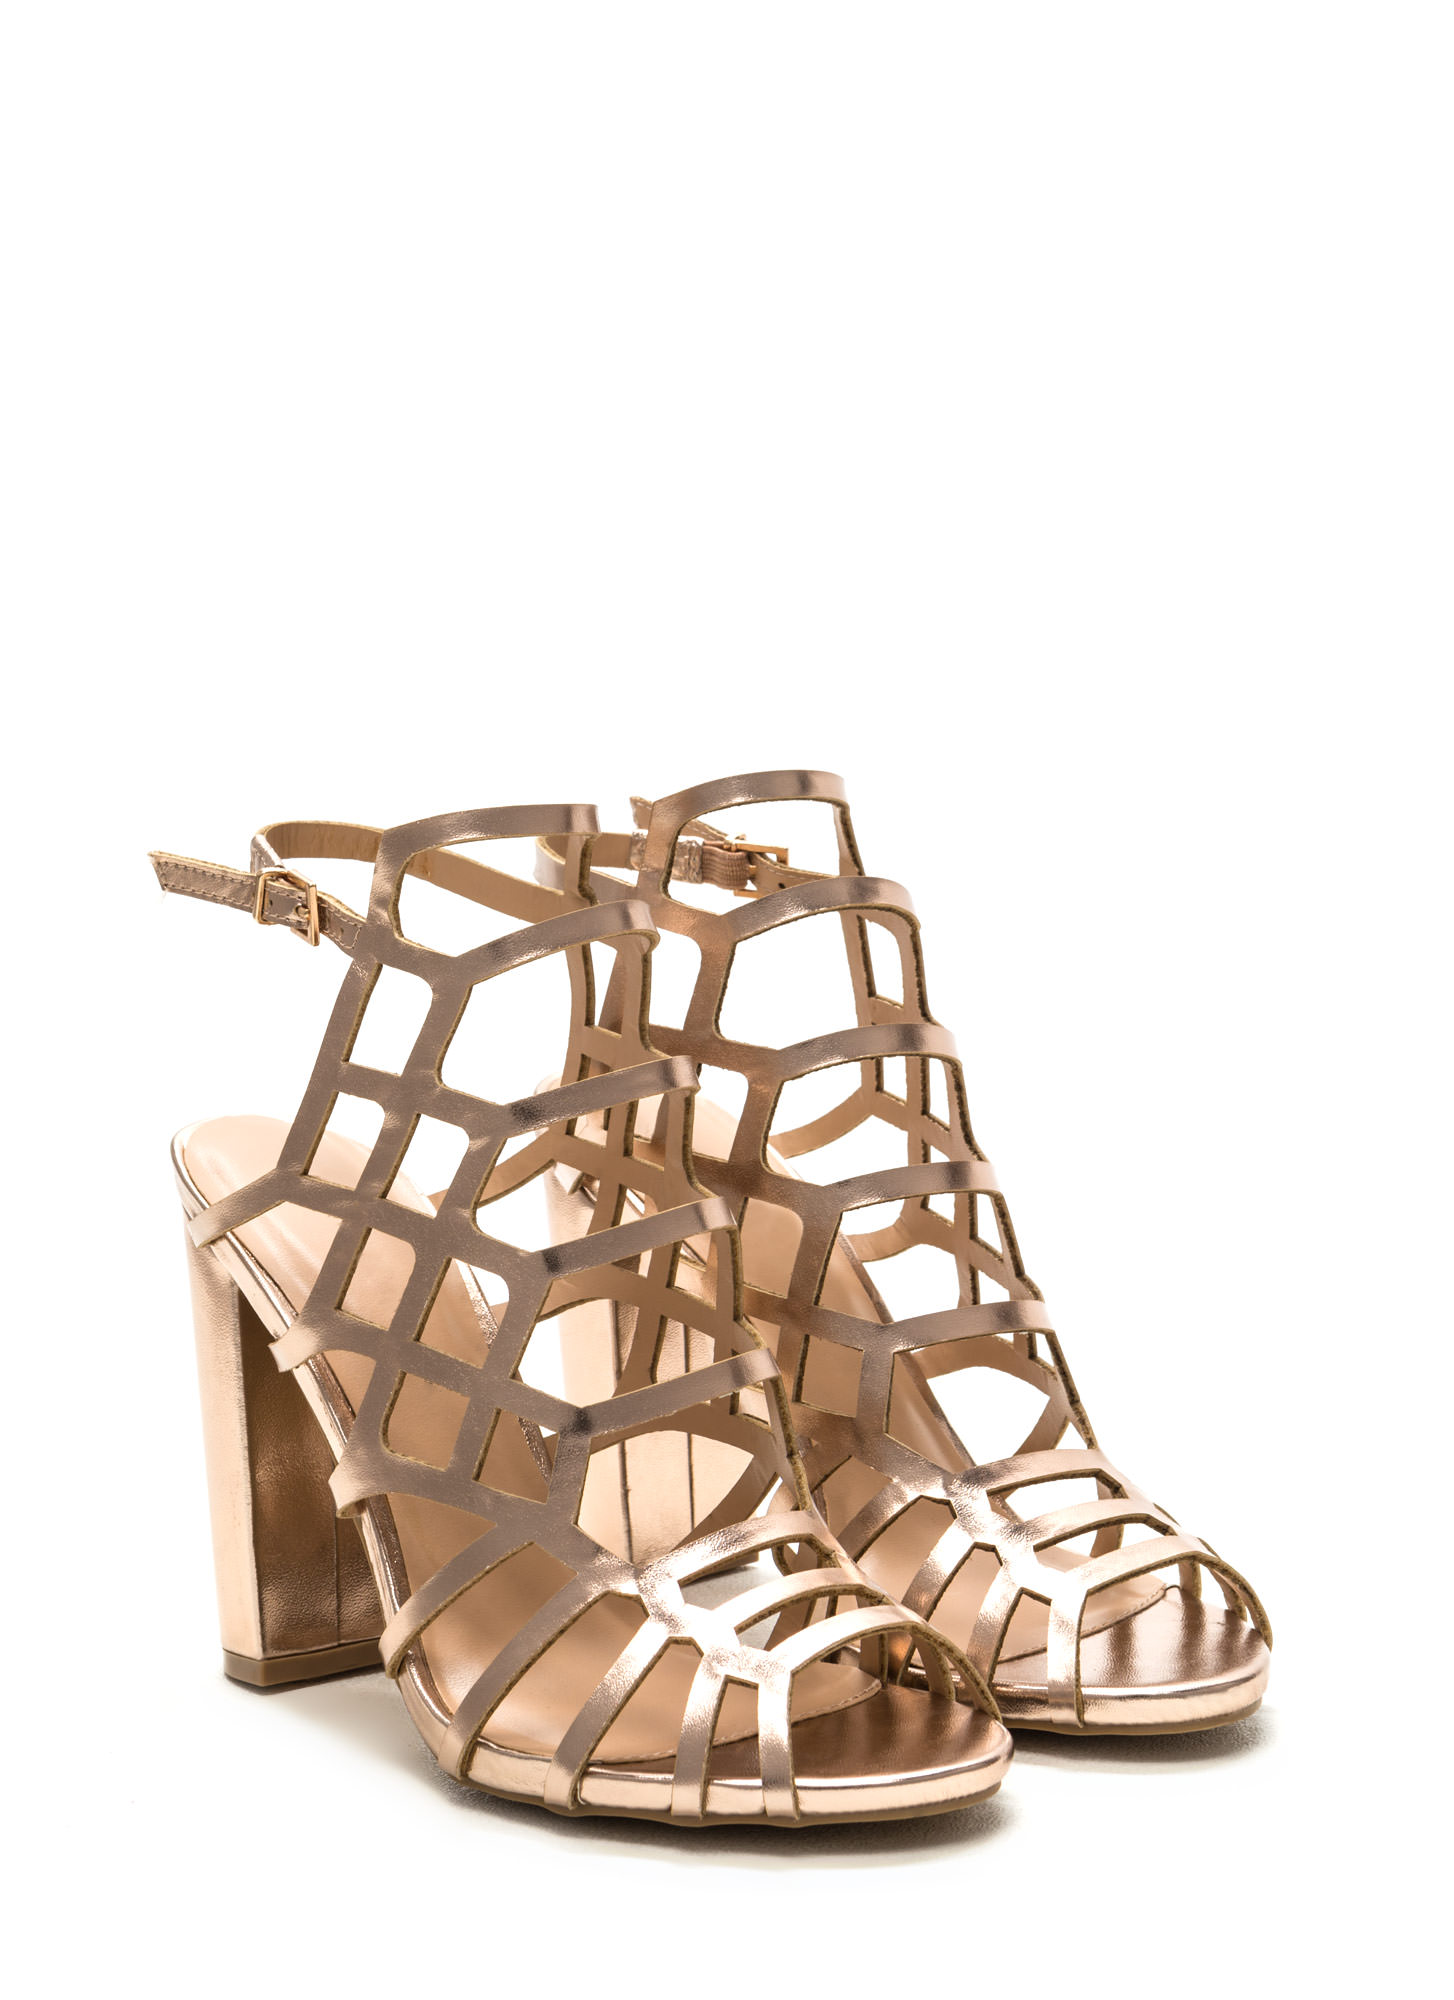 Fresh 'N Fancy Metallic Caged Heels ROSEGOLD